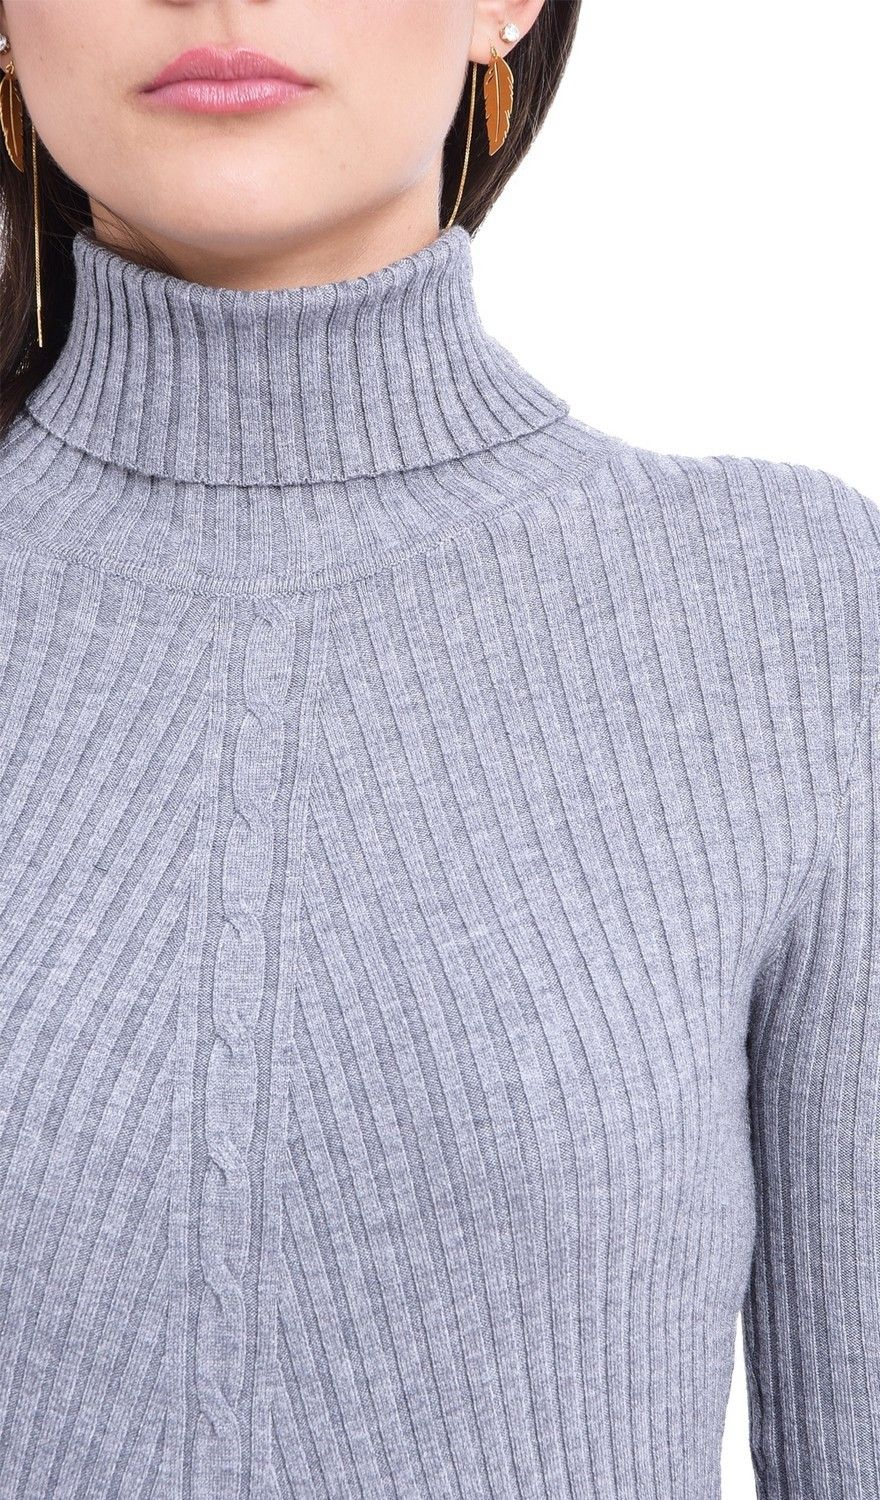 Assuili Turtleneck Twisted Yarn Front Sweater in Grey